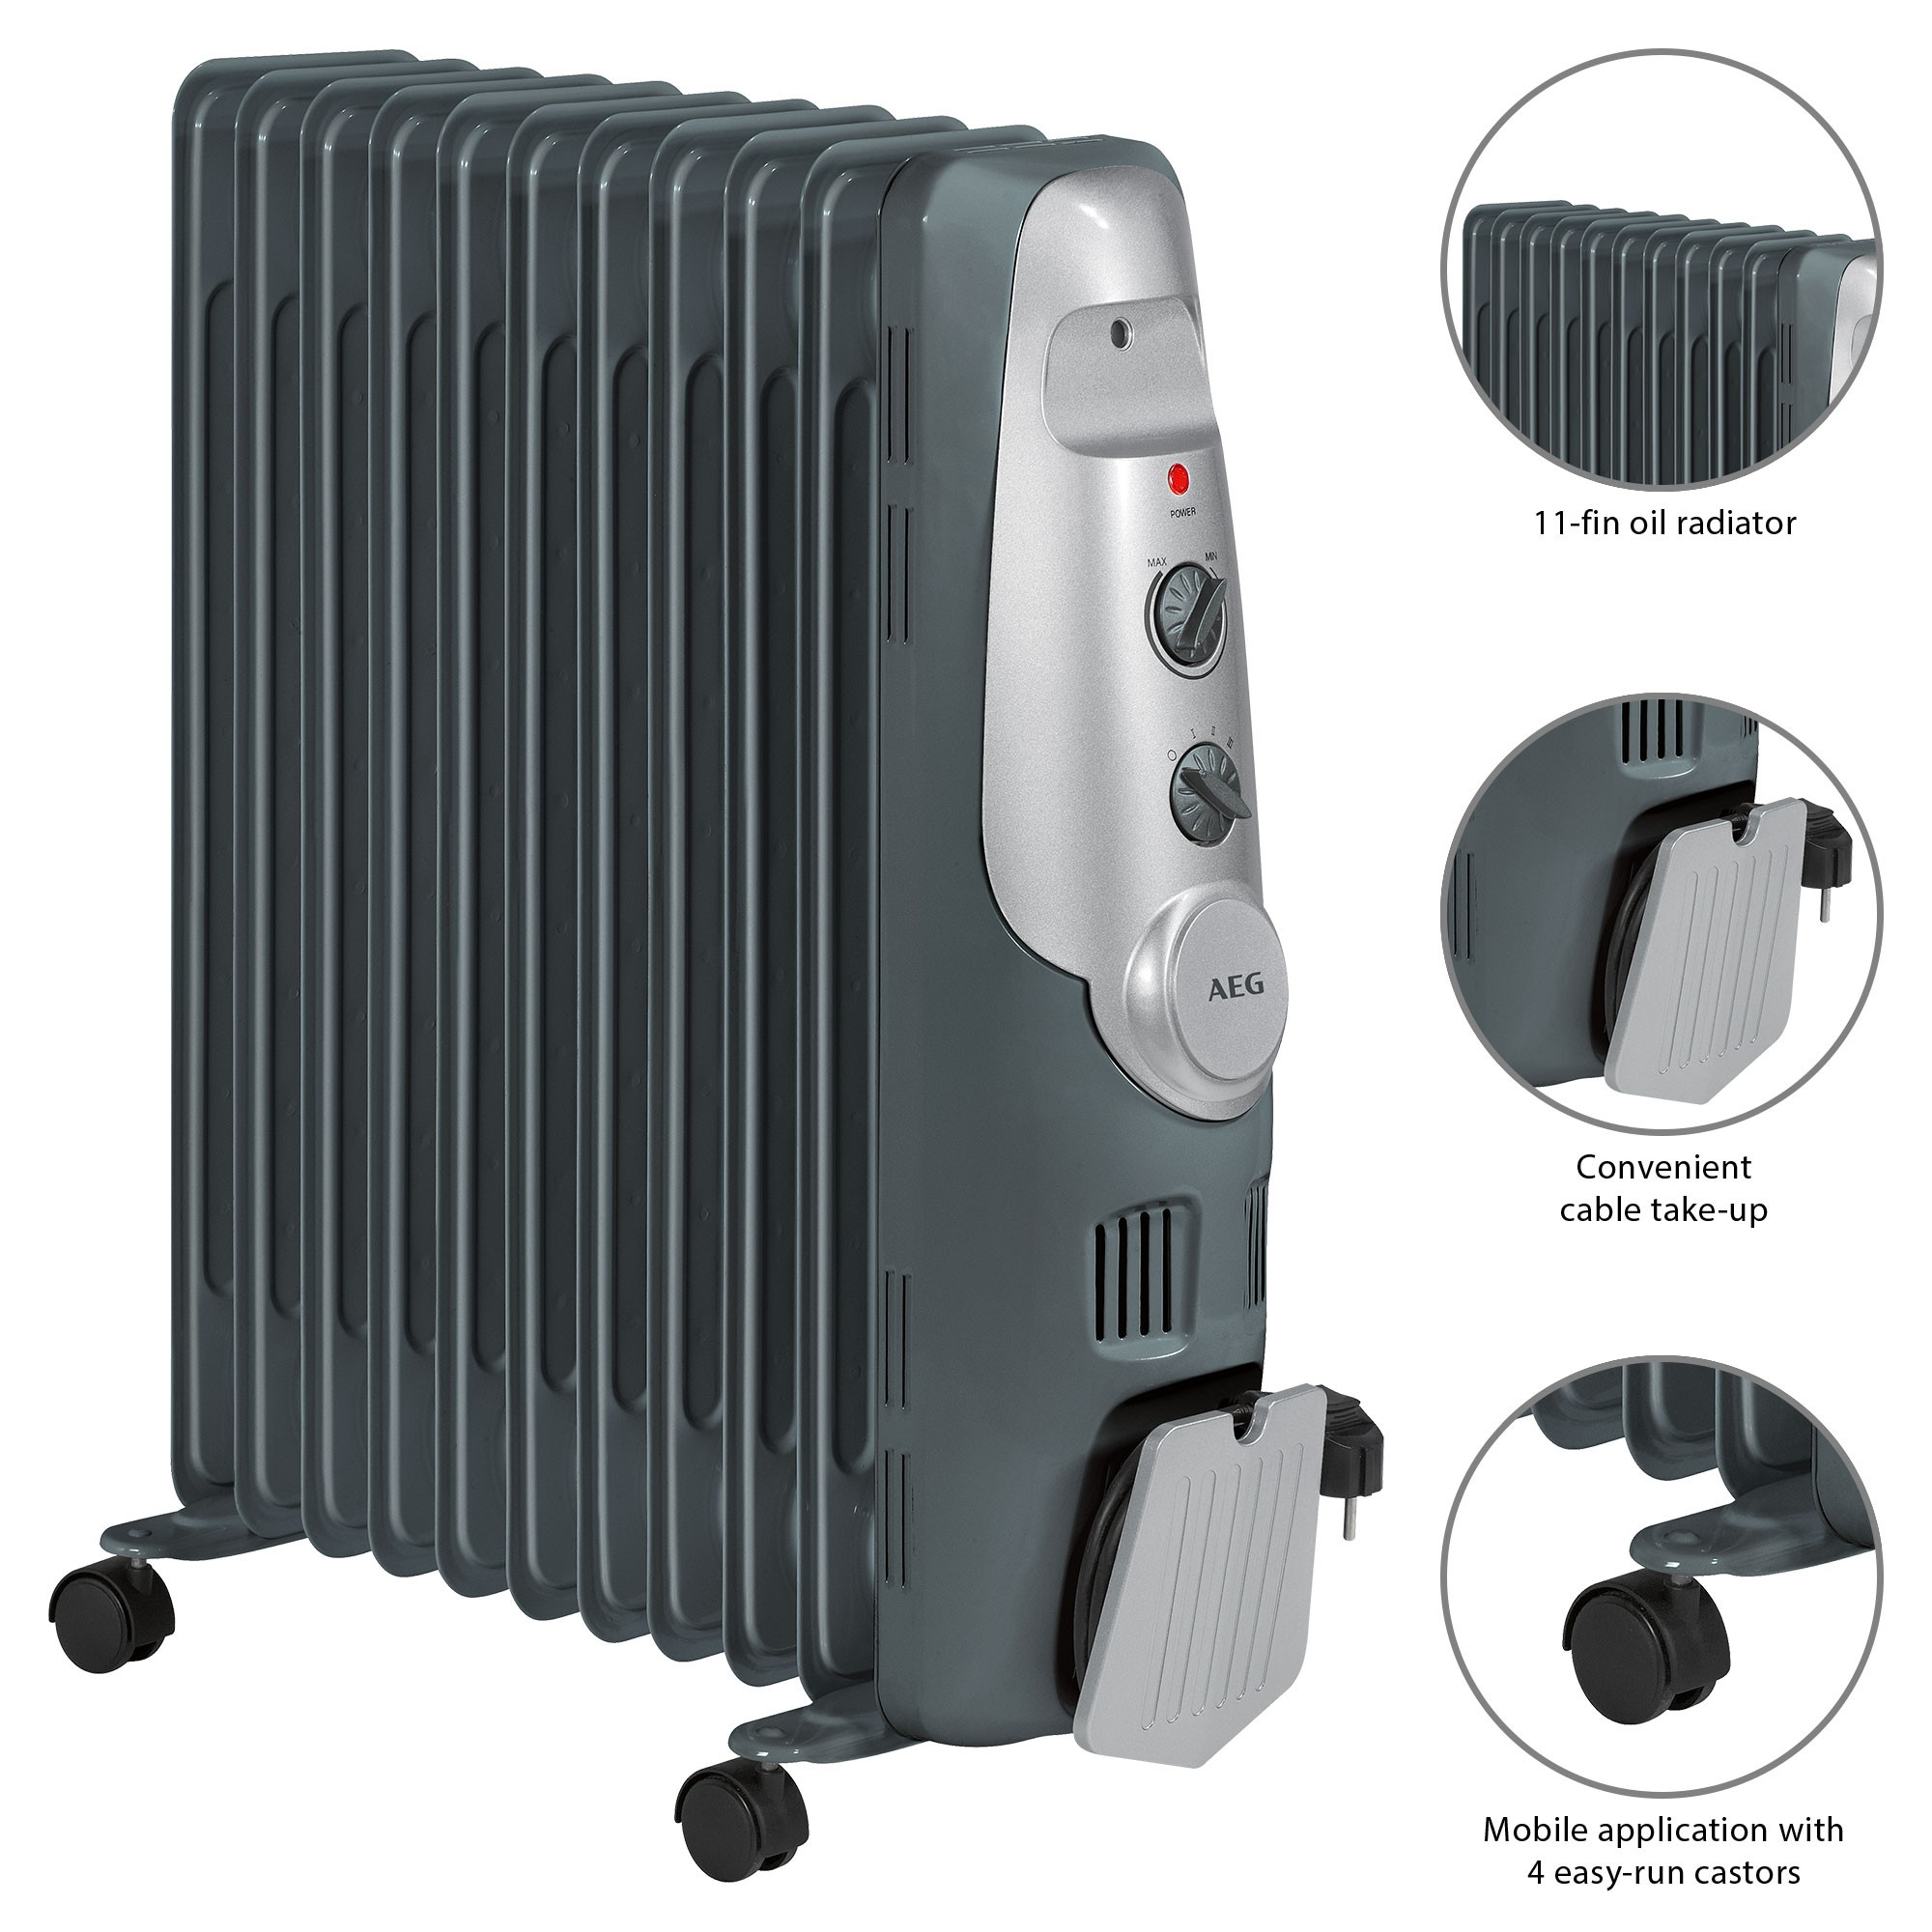 AEG RA 5522 Oil Cooler 2200W 11 Elements Thermostat 3 Tiers Power Regulatory Power For A Low Consumption